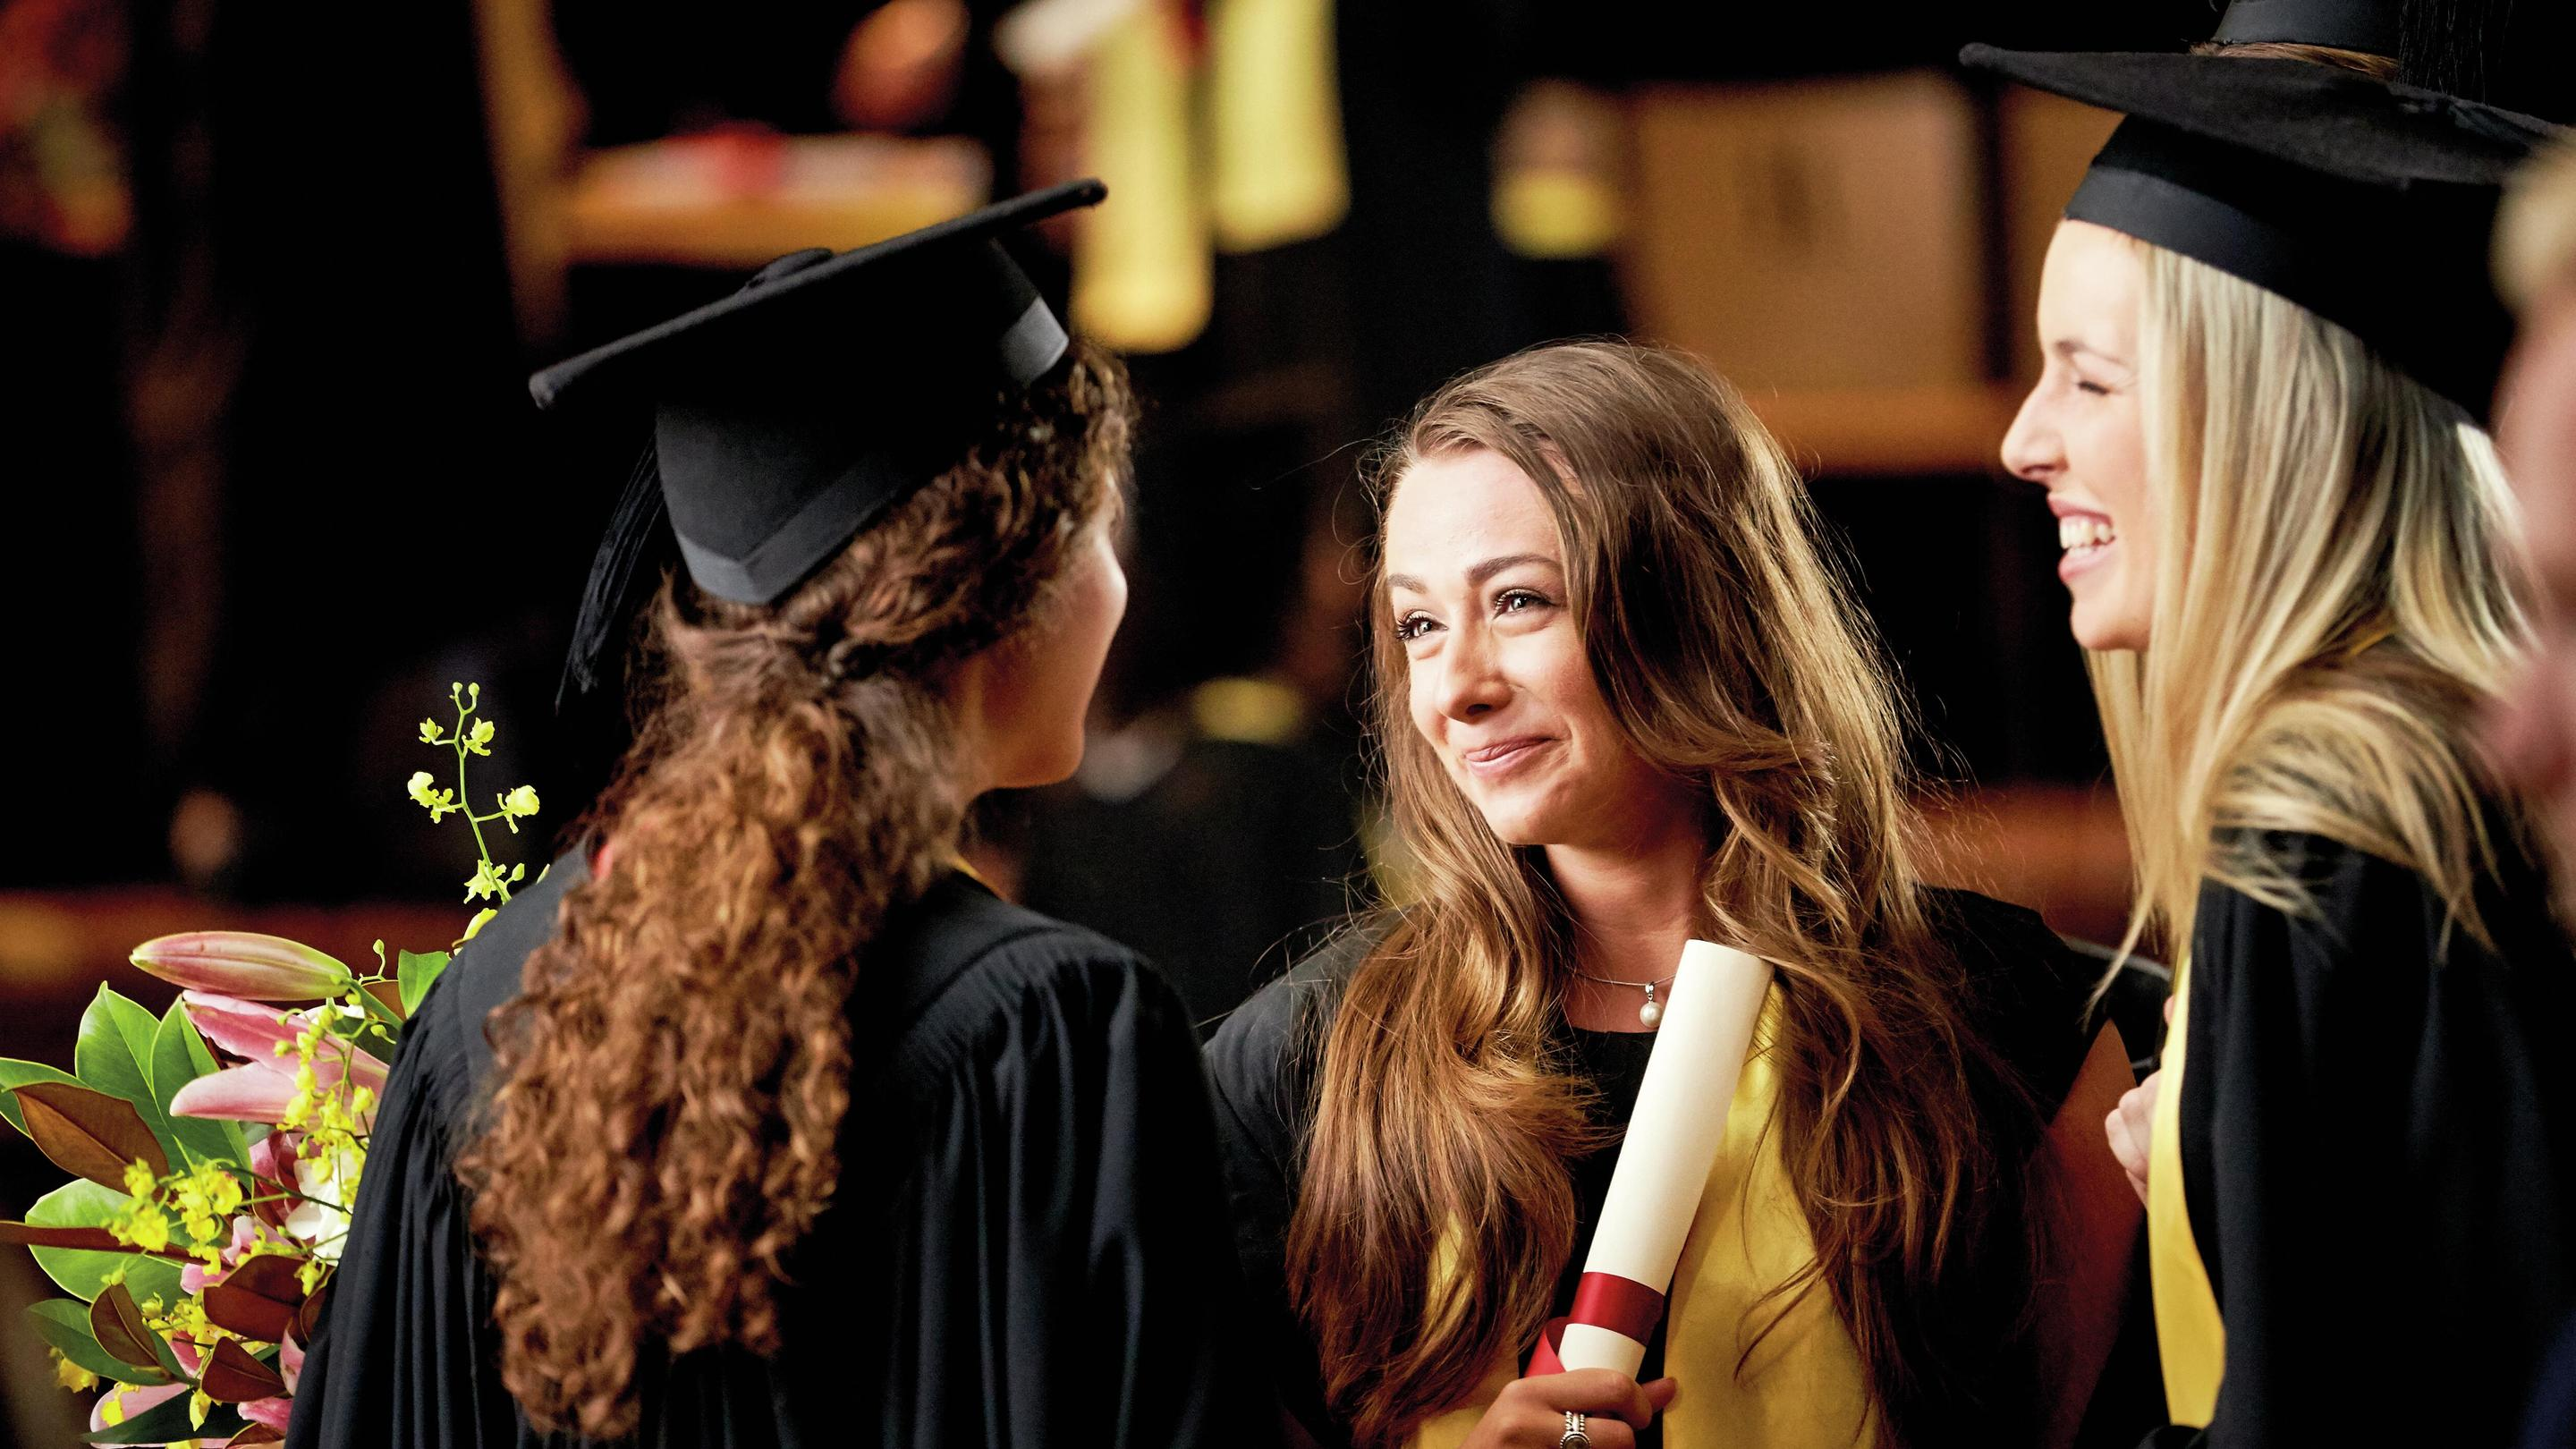 Three friends chat after graduating from university